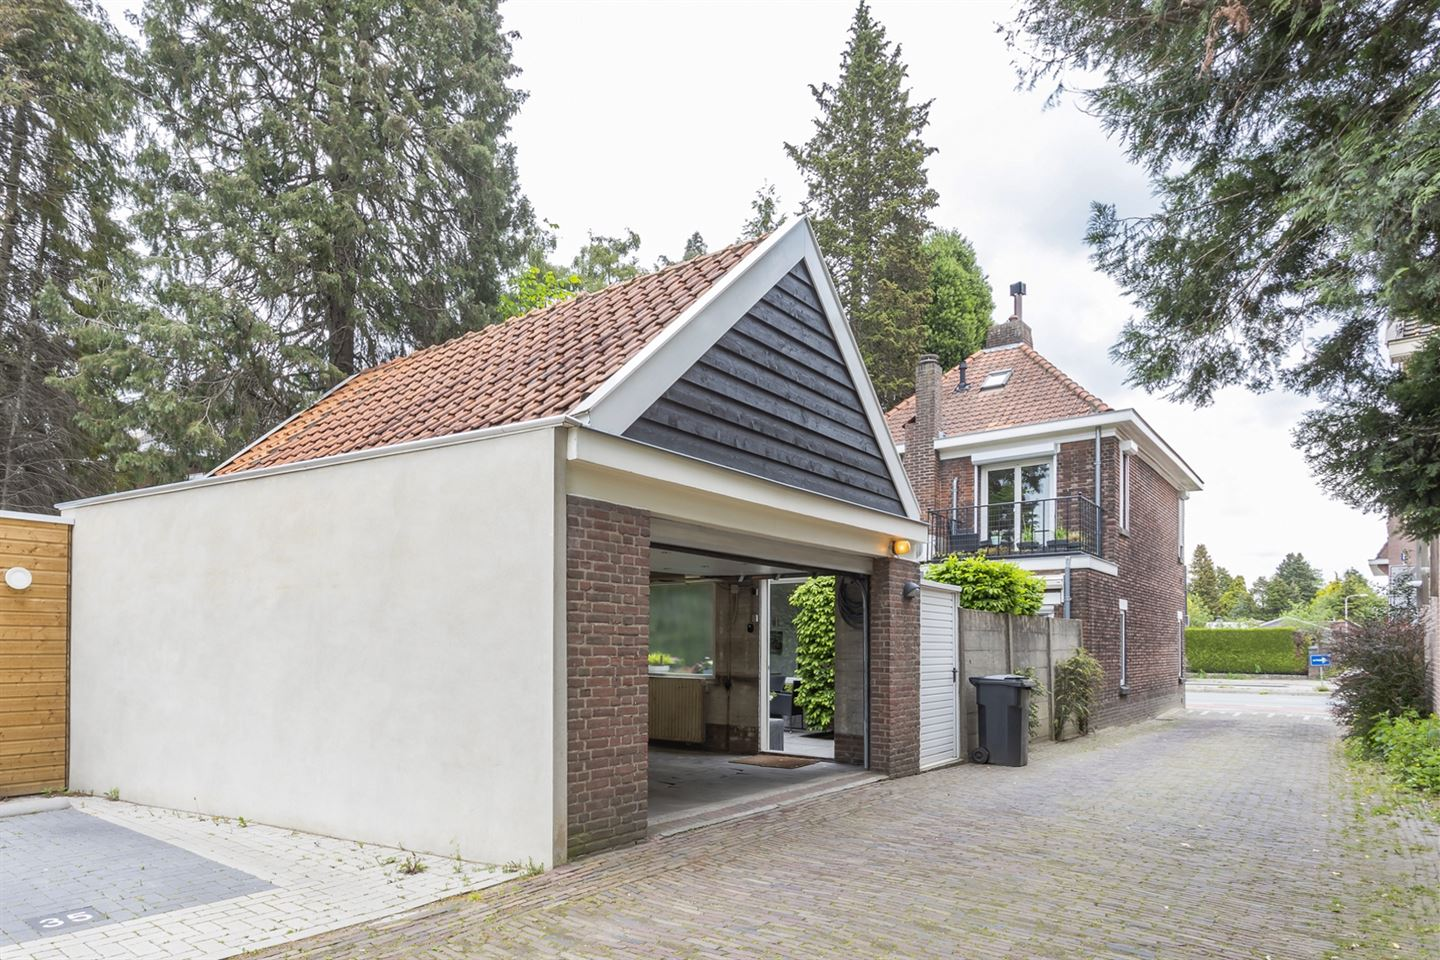 View photo 4 of Ringbaan-Oost 409